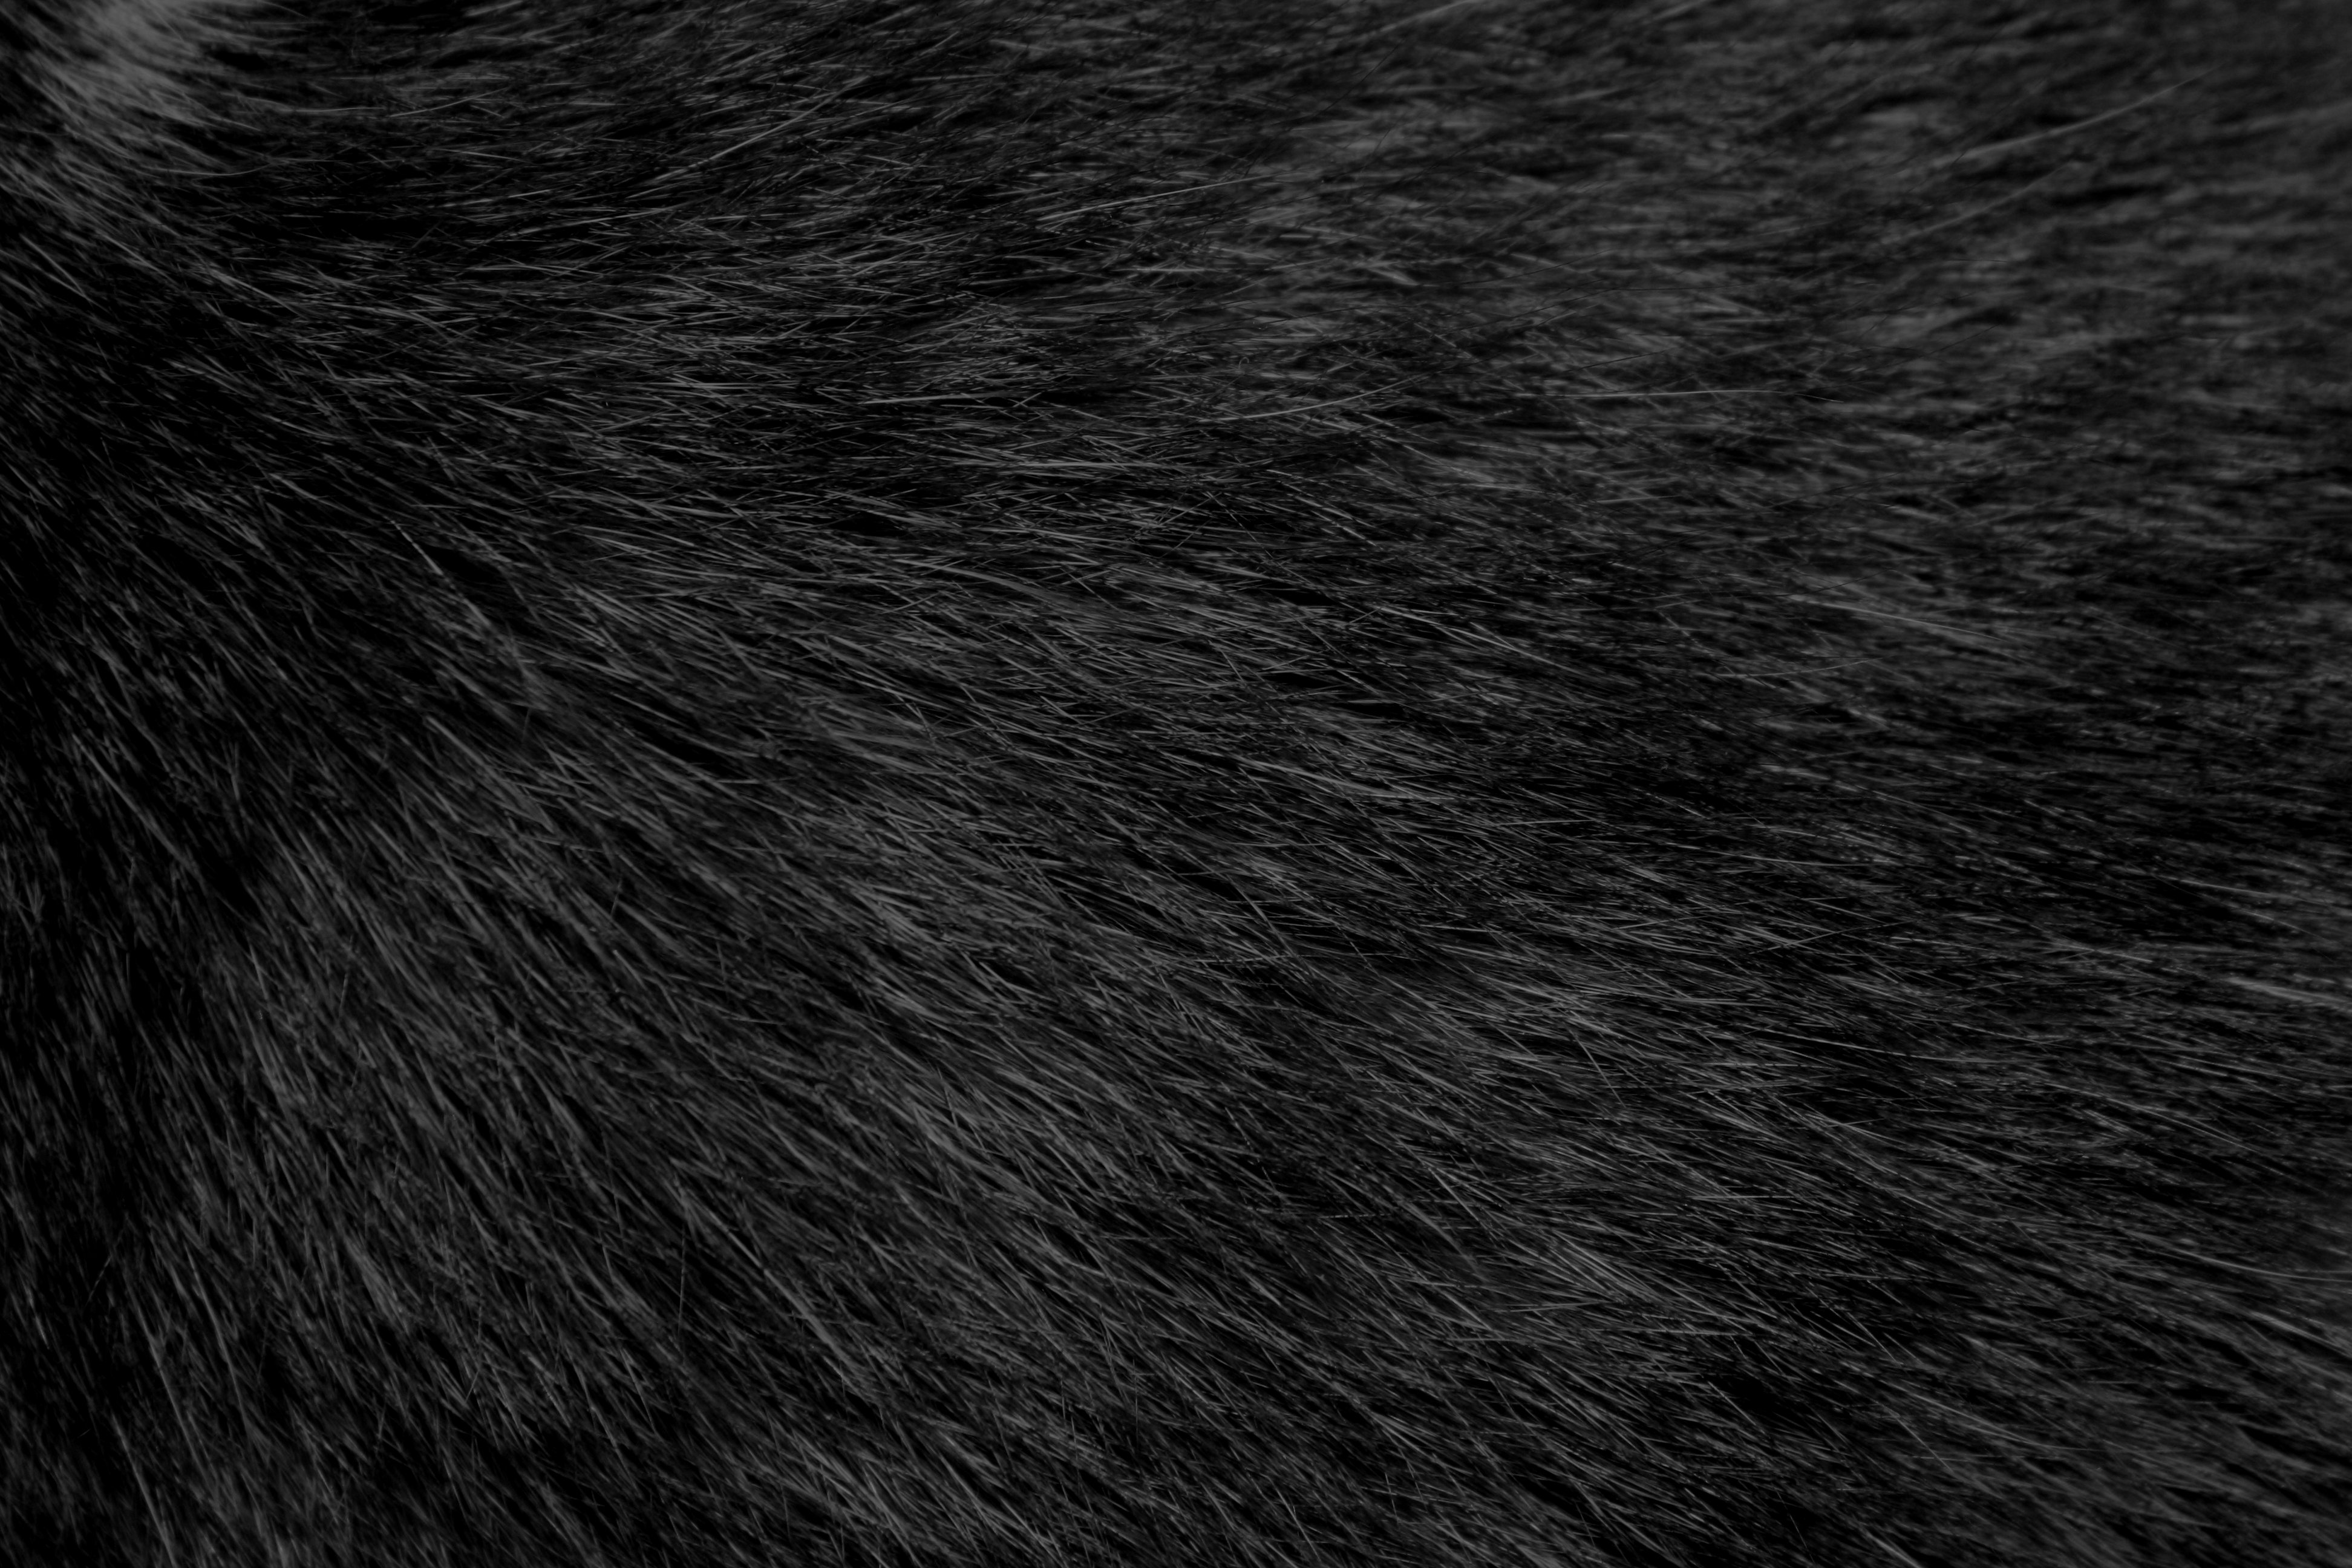 Black Cat Fur Texture   High Resolution Photo   Dimensions 3888 3888x2592